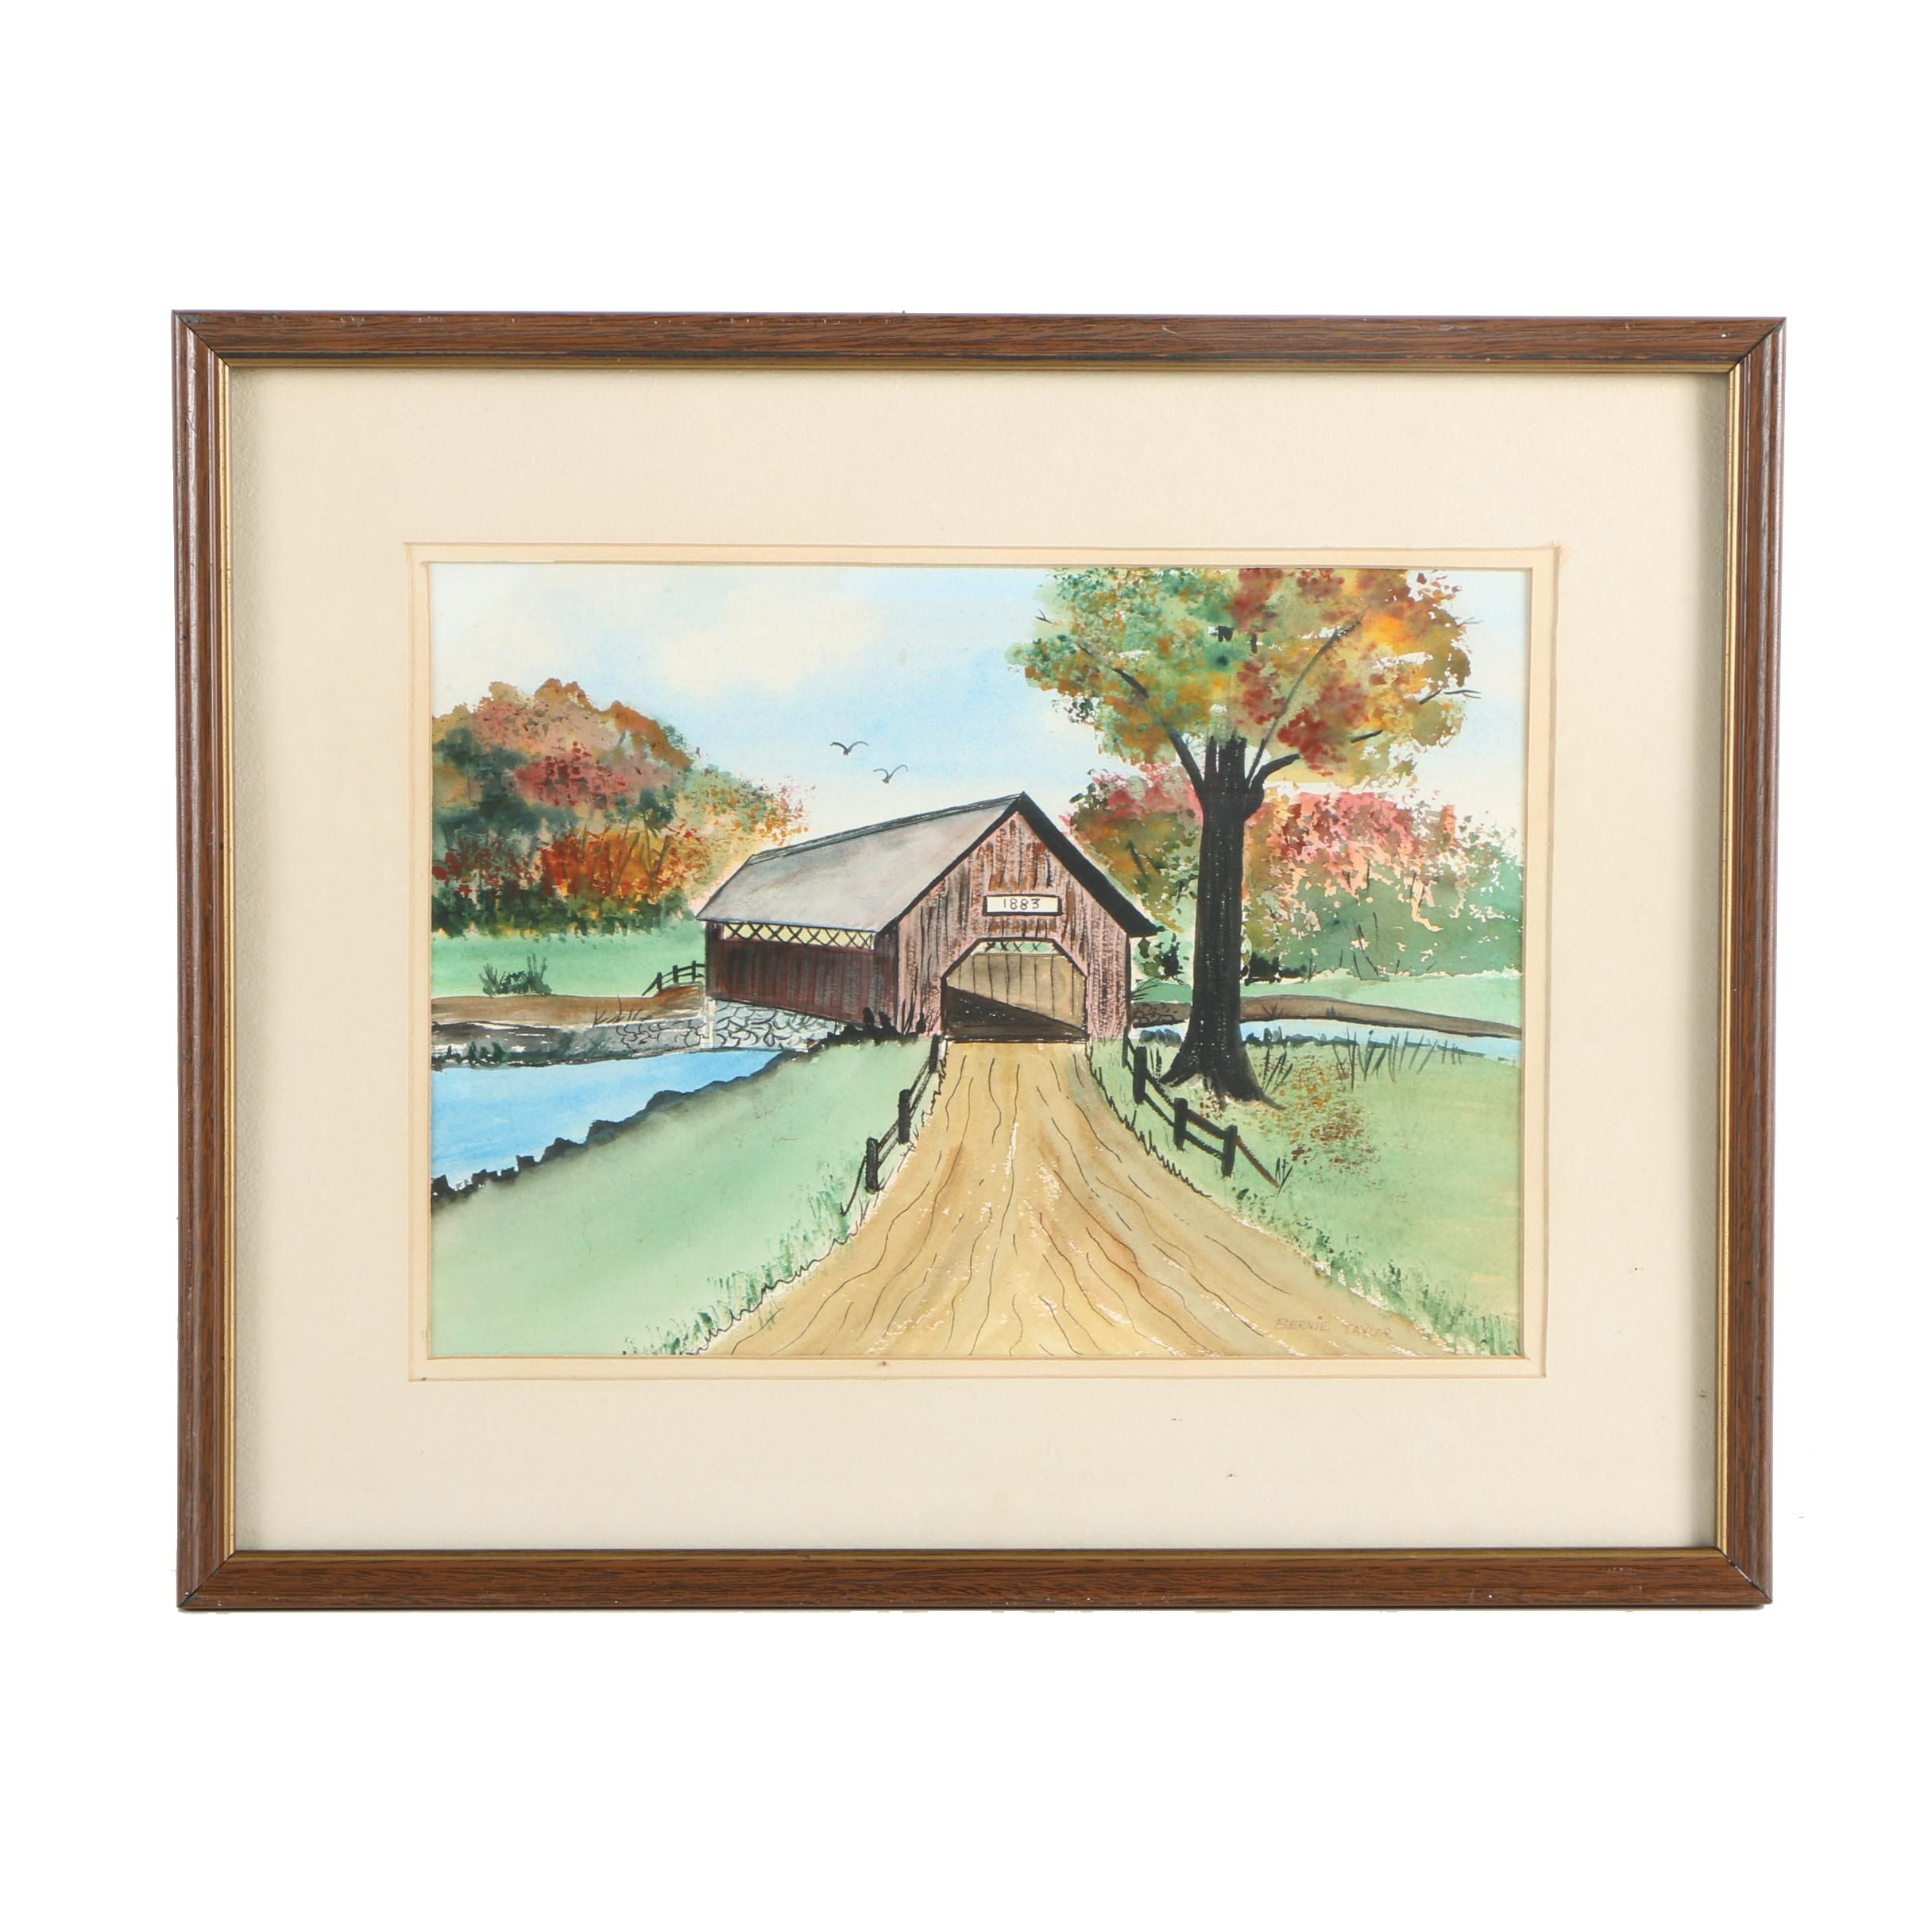 Bernie Taylor Watercolor and Gouache Painting on Paper of Bridge